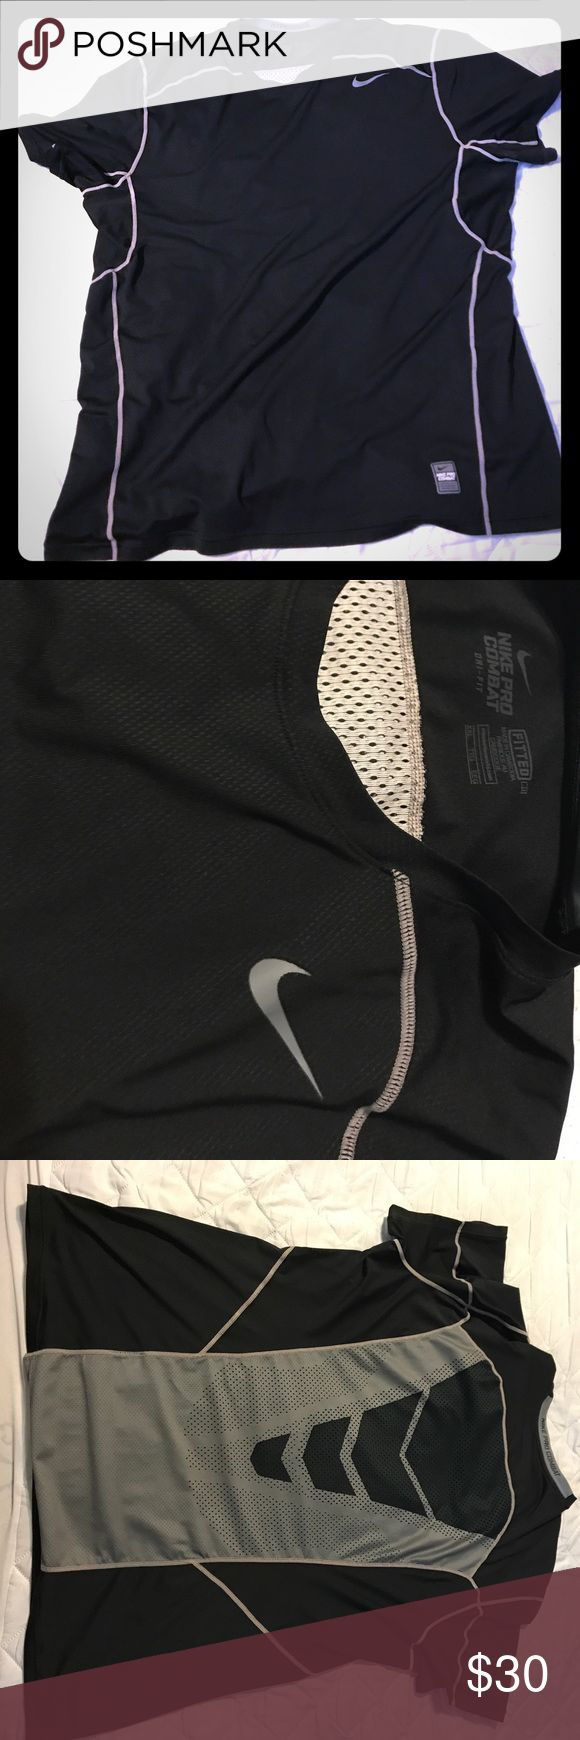 Nike Pro Combat DrI Fit Shirt Nike Pro Combat DrI Fit Shirt hyper-cool, no sign of wear new condition Nike Shirts Tees - Short Sleeve